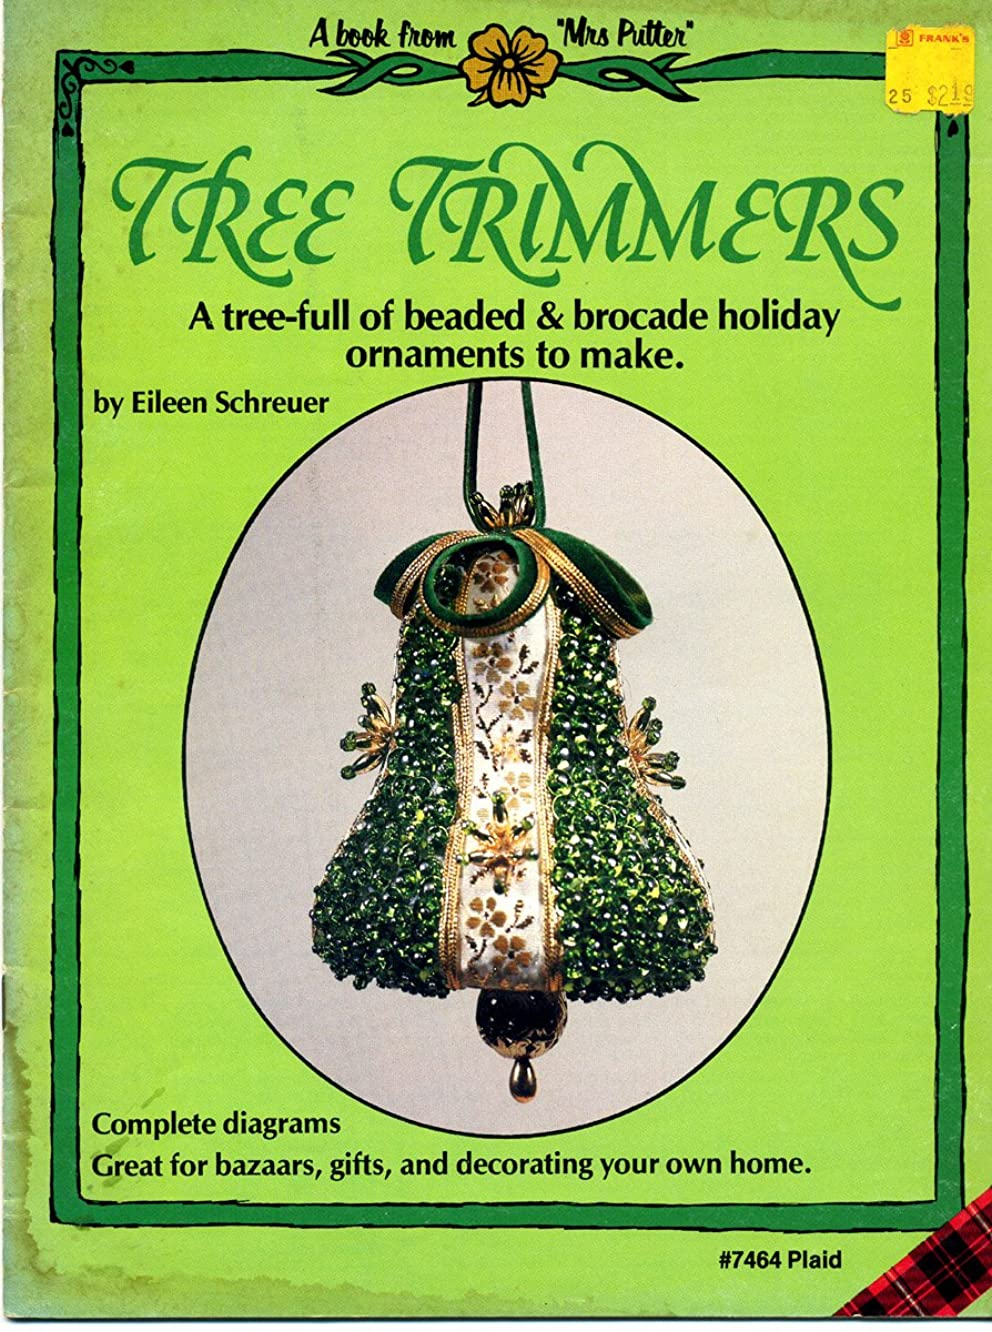 Tree Trimmers: A Tree-full of Beaded & Brocade Holiday Ornaments to Make (Plaid #7464)